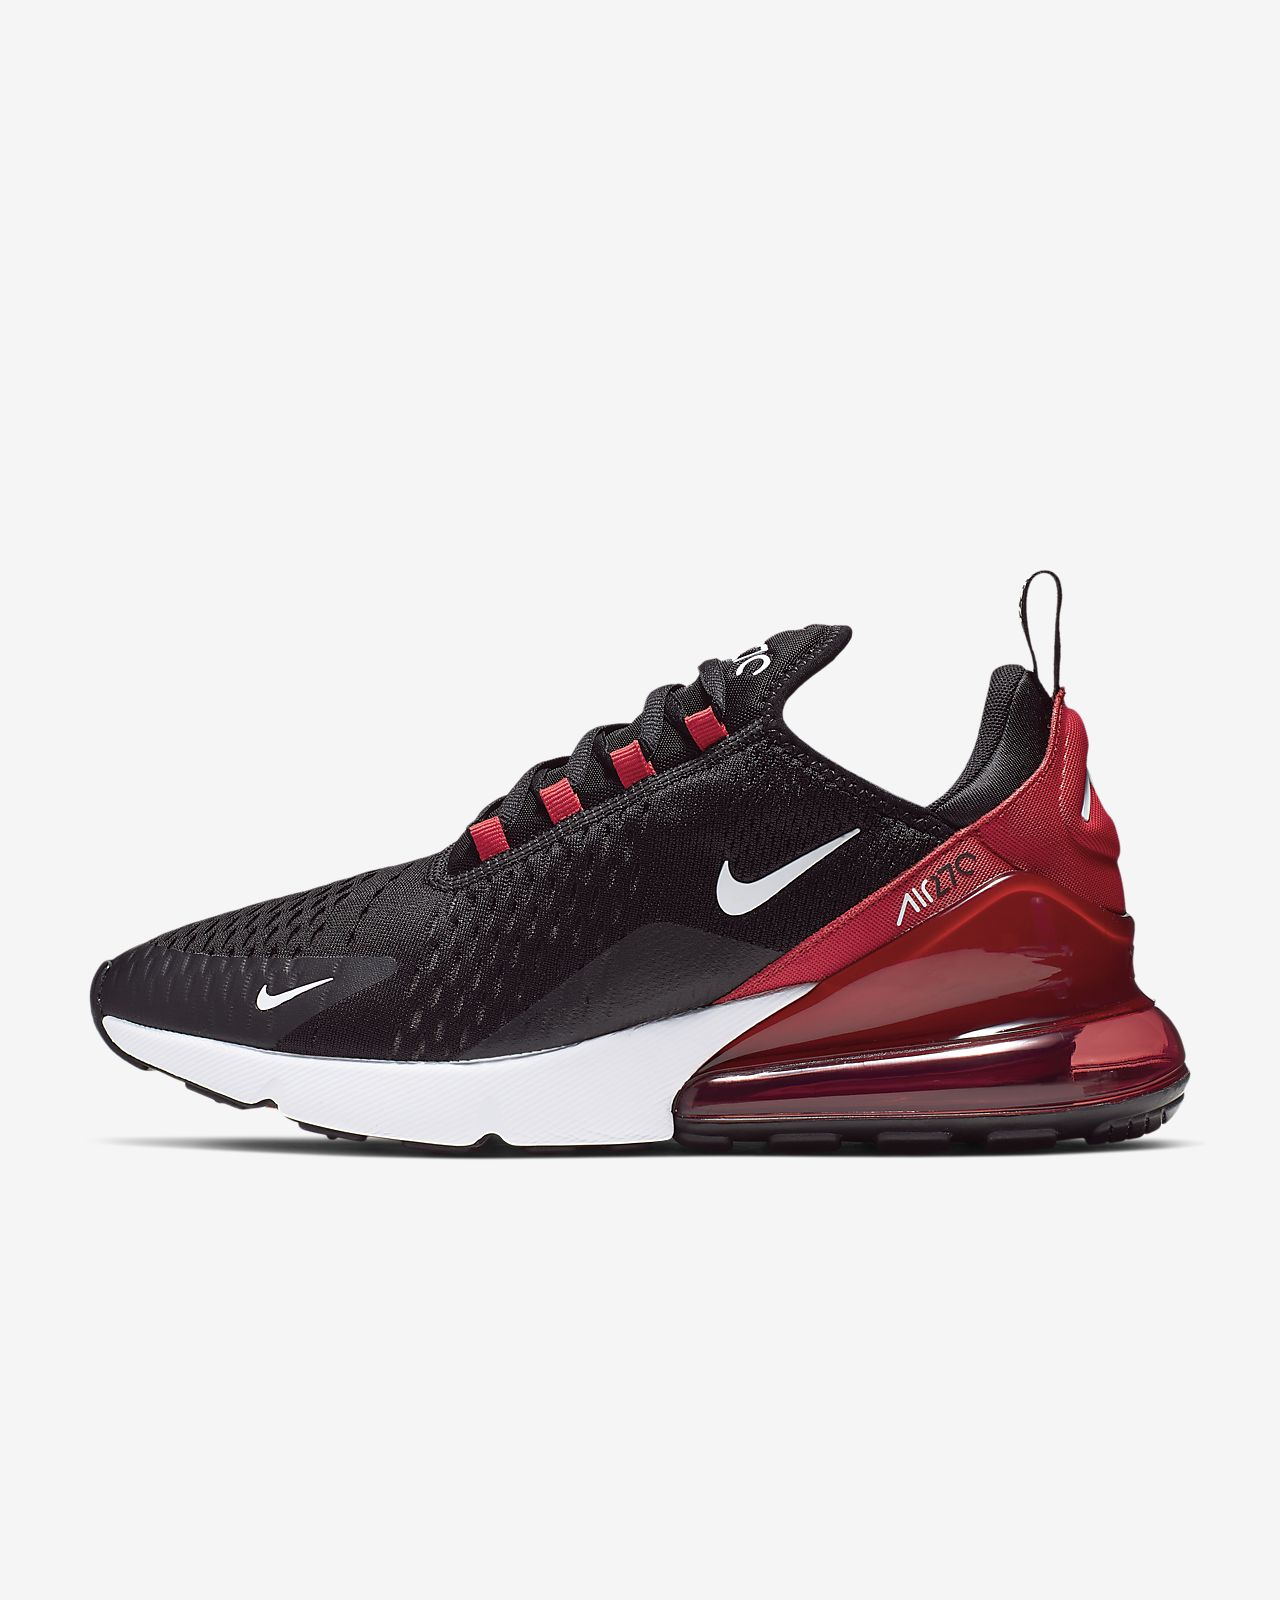 6246aef6ebab3f Nike Air Max 270 Men s Shoe. Nike.com GB